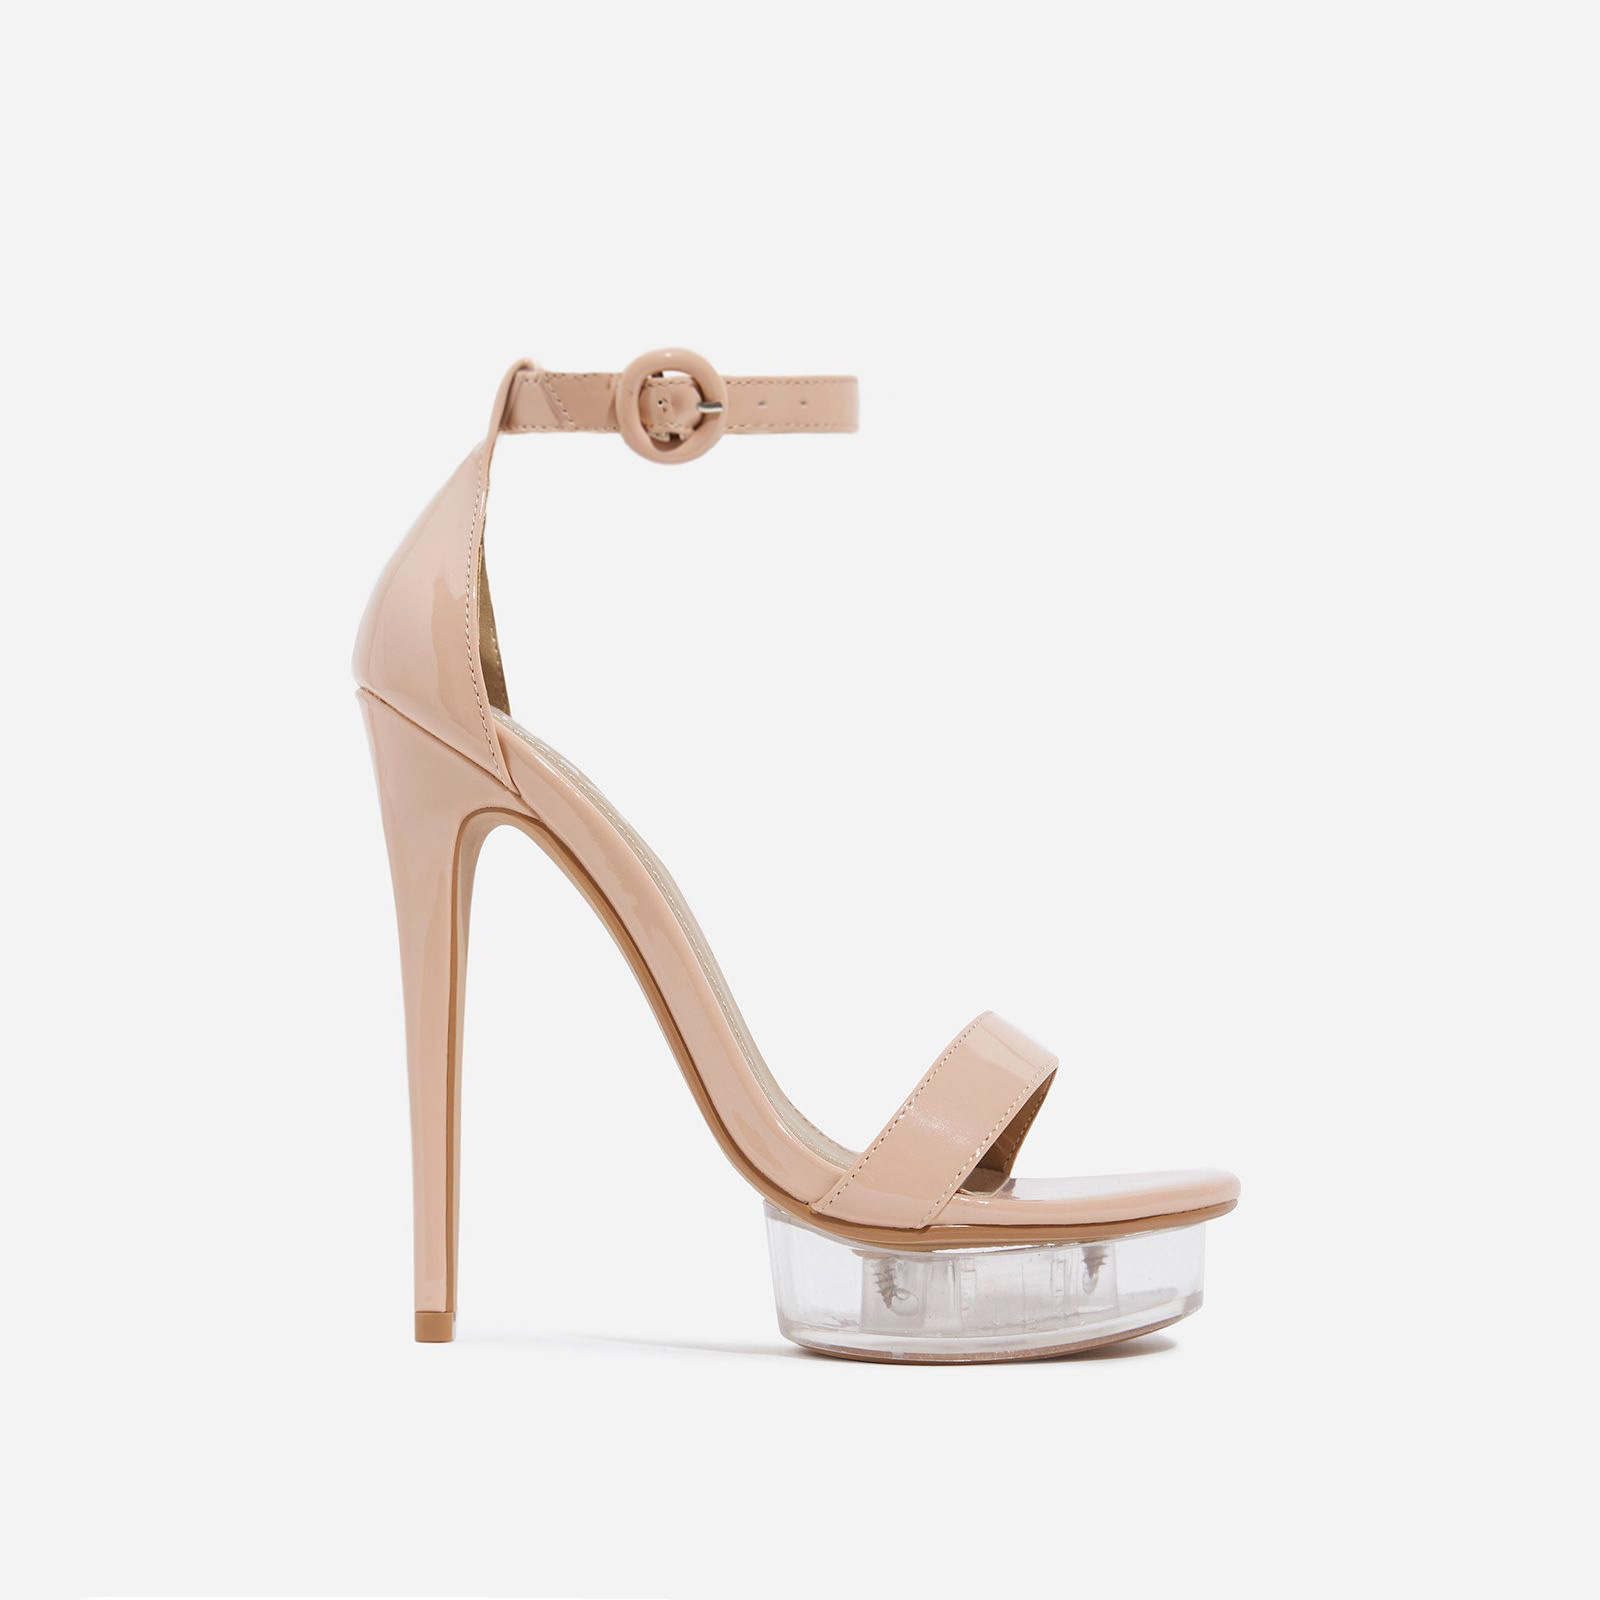 Passion Barely There Perspex Platform Heel In Nude Patent